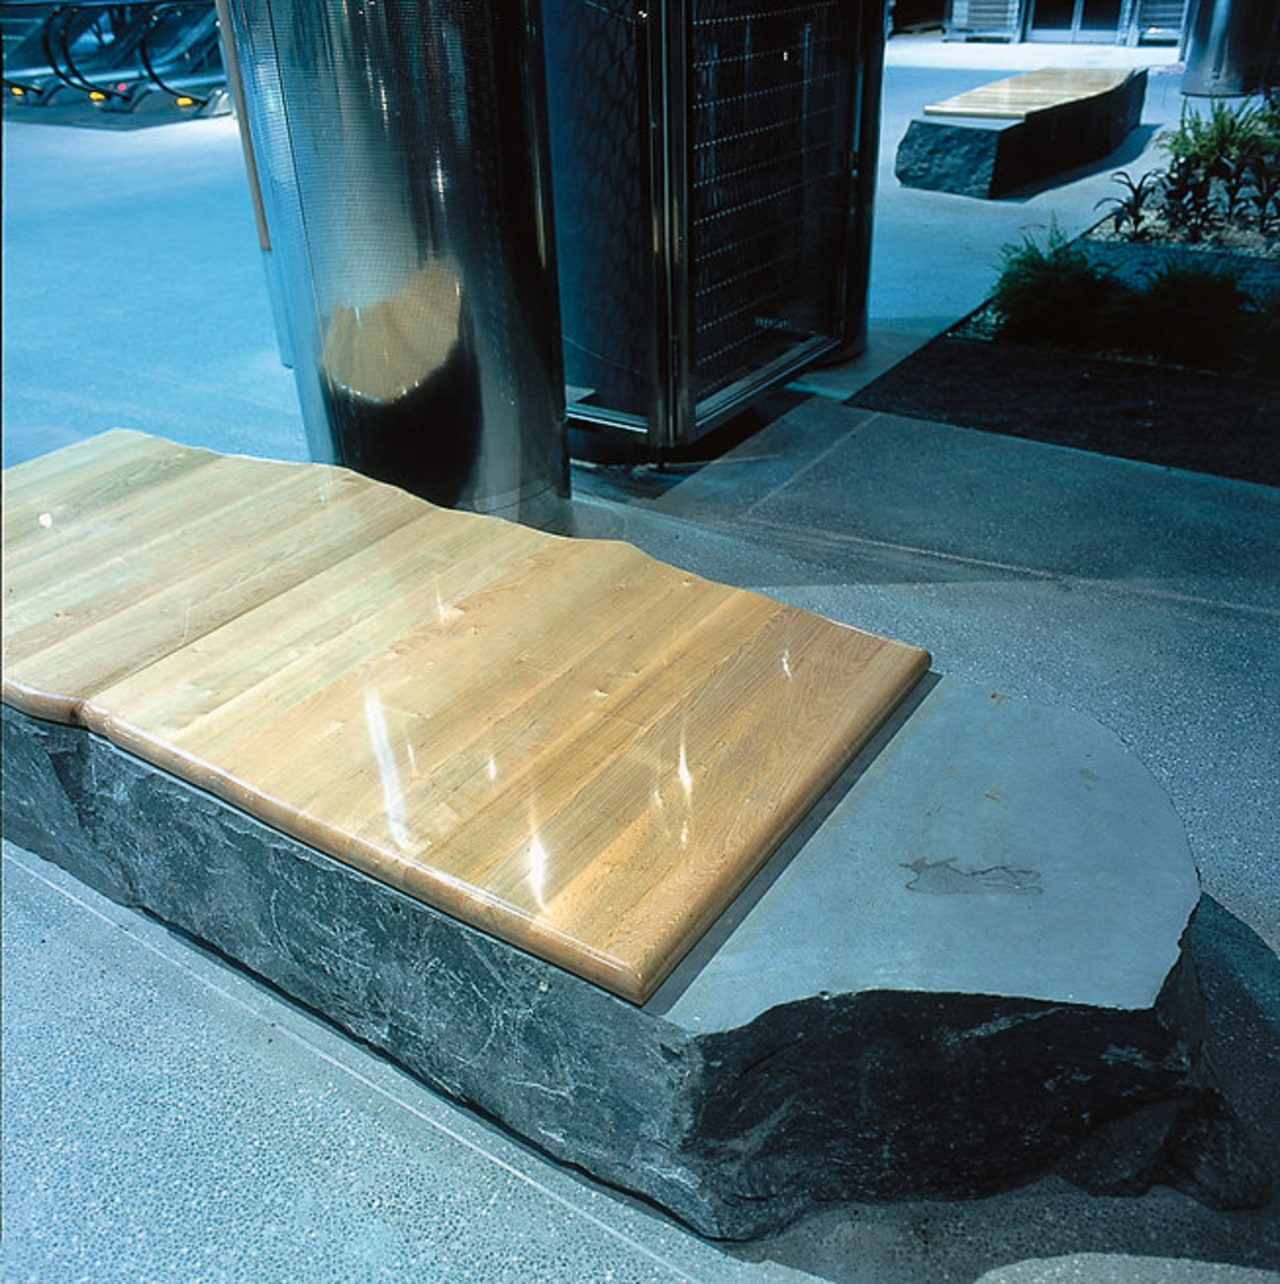 Auckland's Britomart Transport Centre. This timber seat is floor, water, wood, teal, black